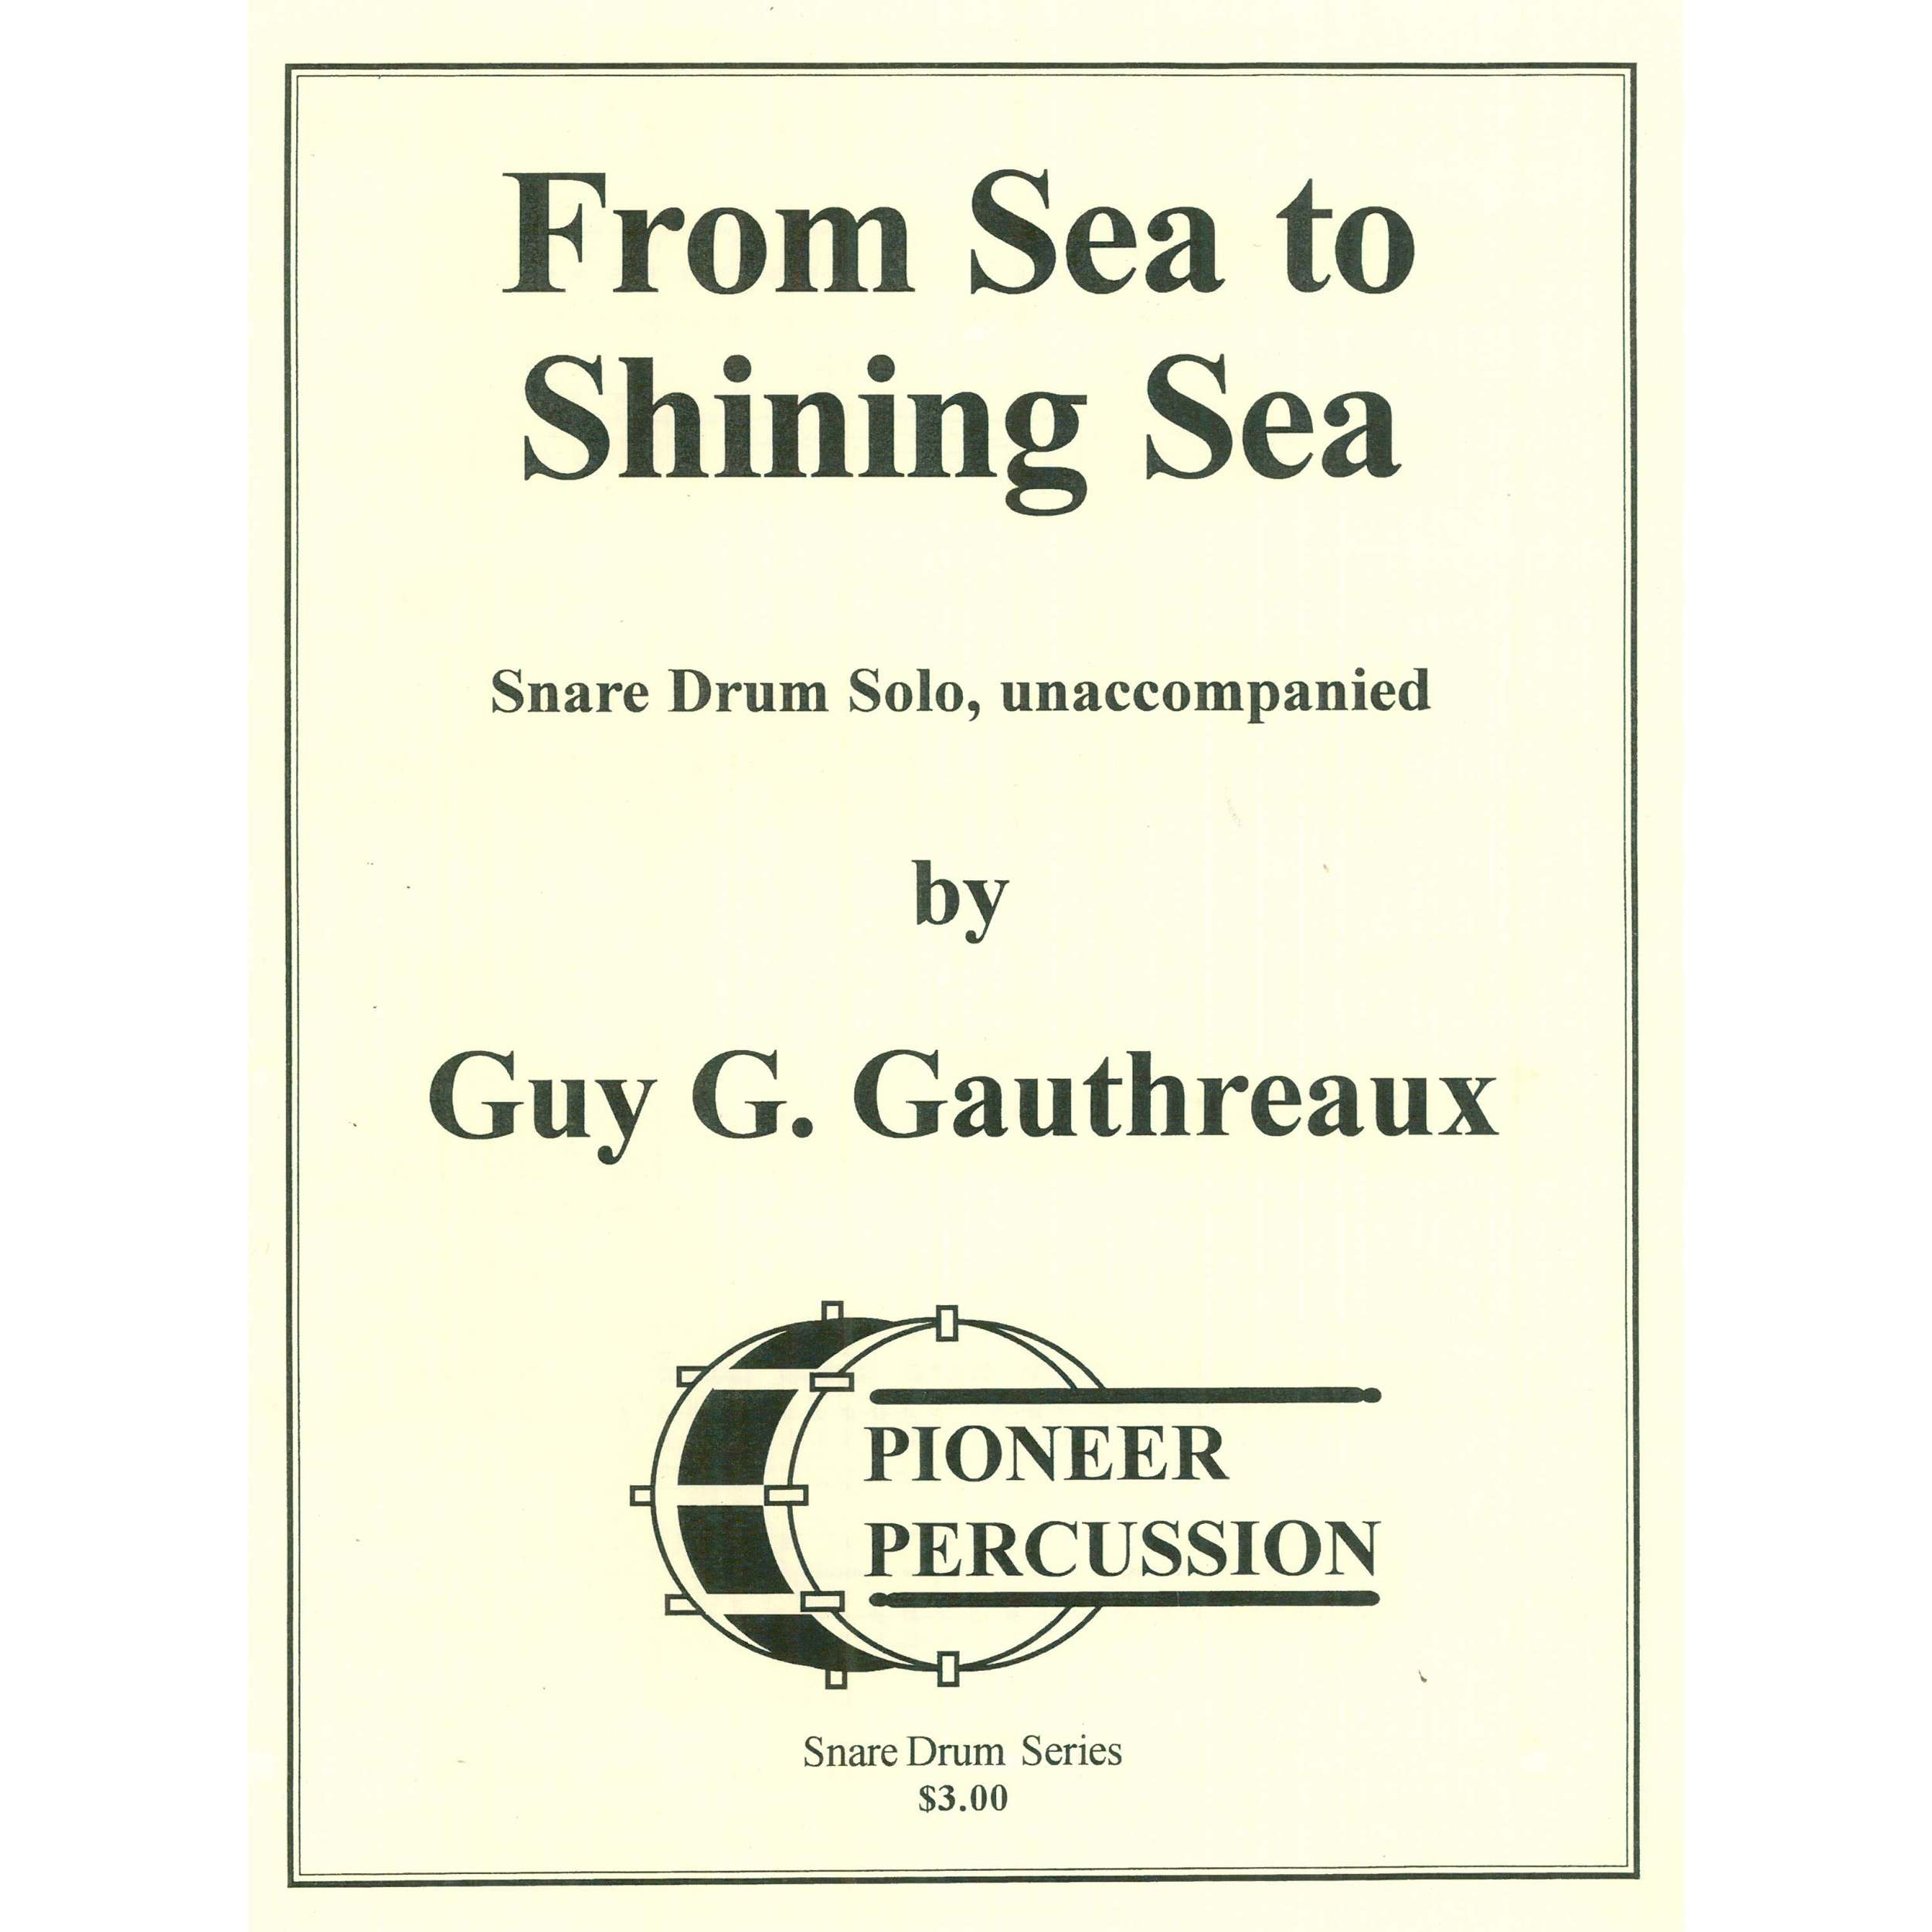 From Sea to Shining Sea by Guy Gauthreaux